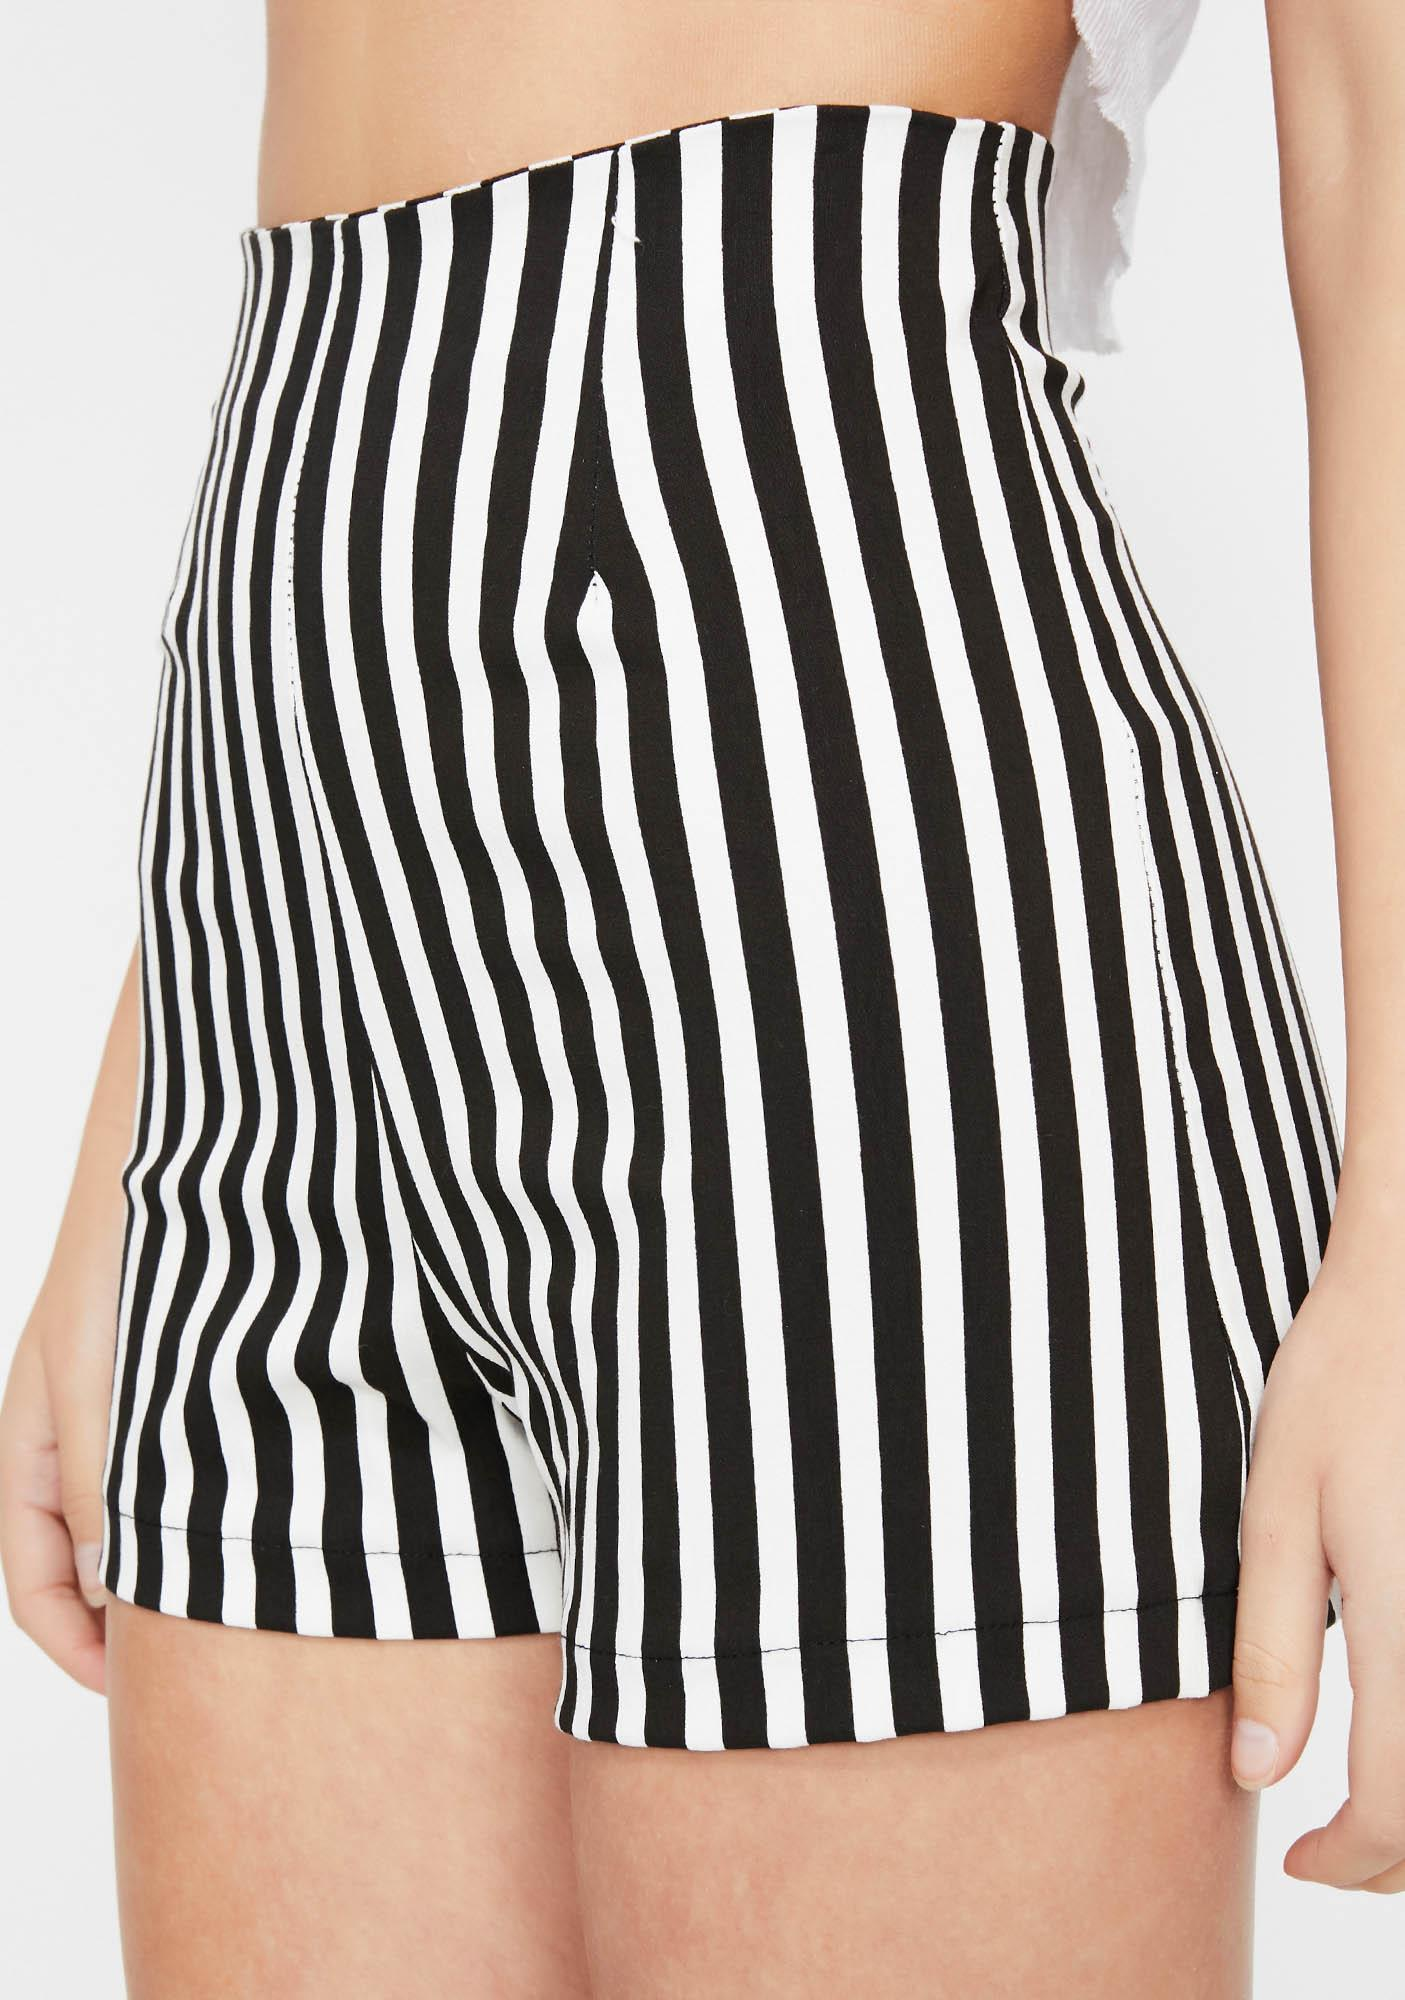 Color Me Baddie Striped Shorts